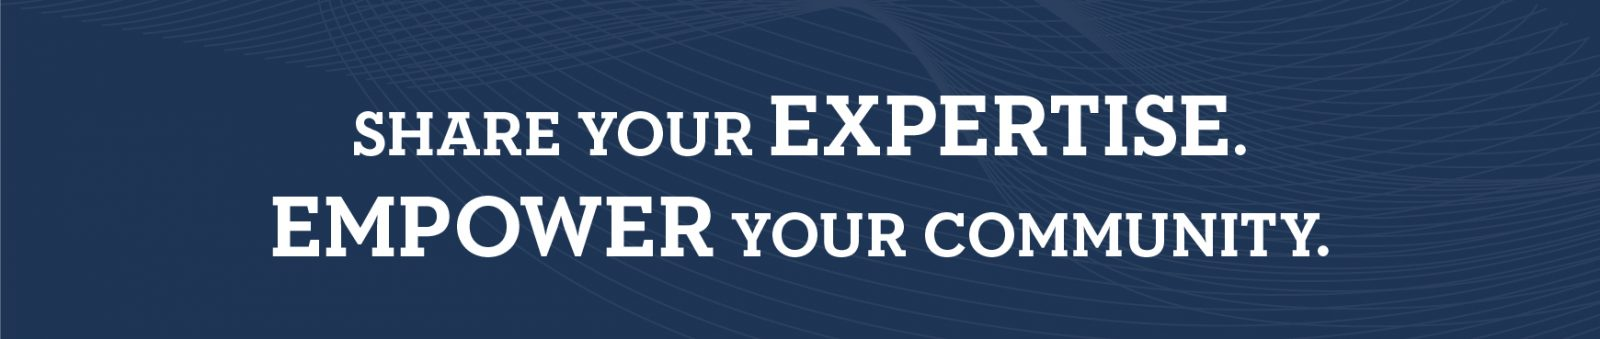 share your expertise. empower your community.